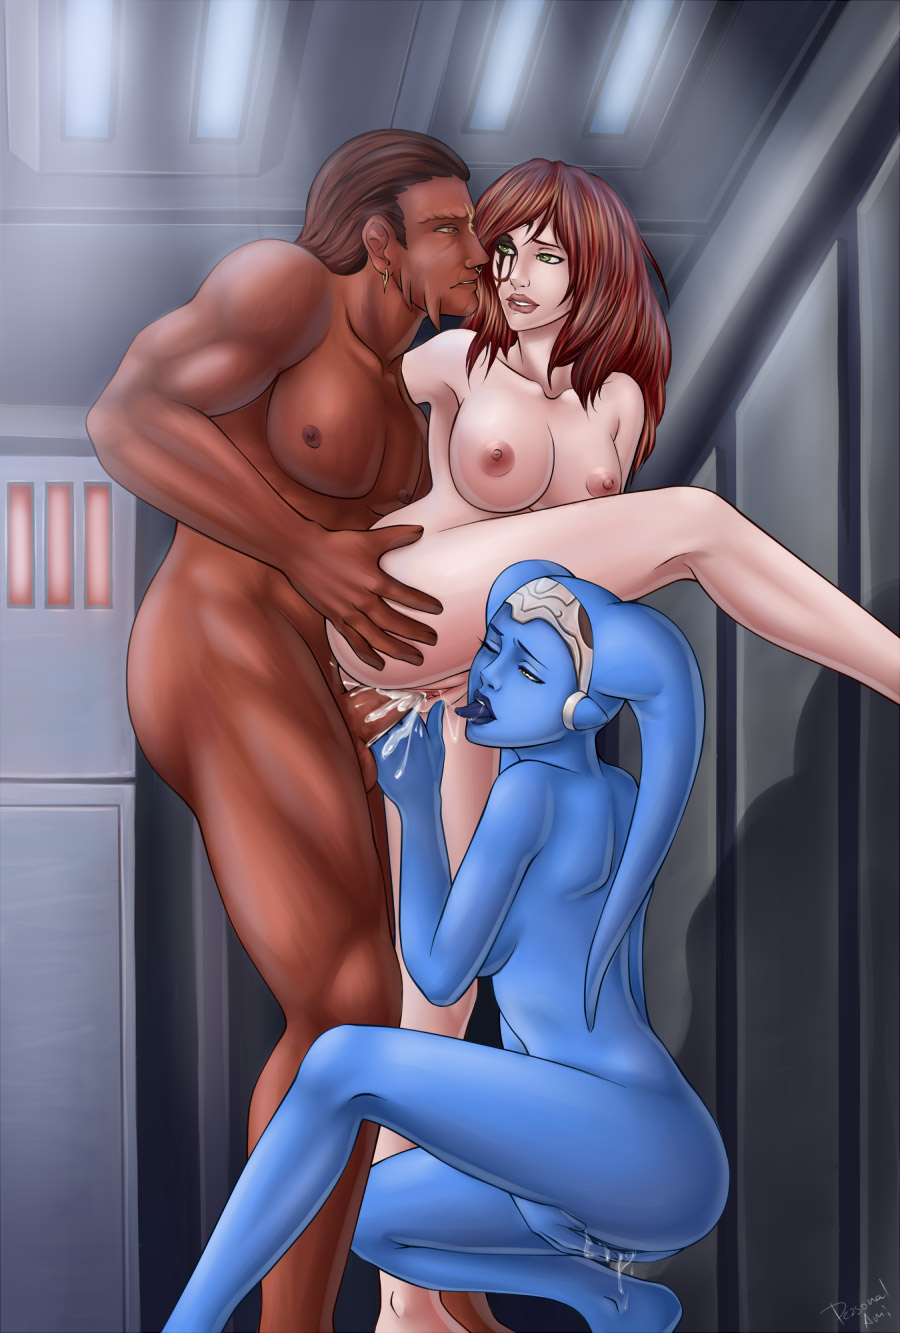 Sith and porno anime pics smut scene